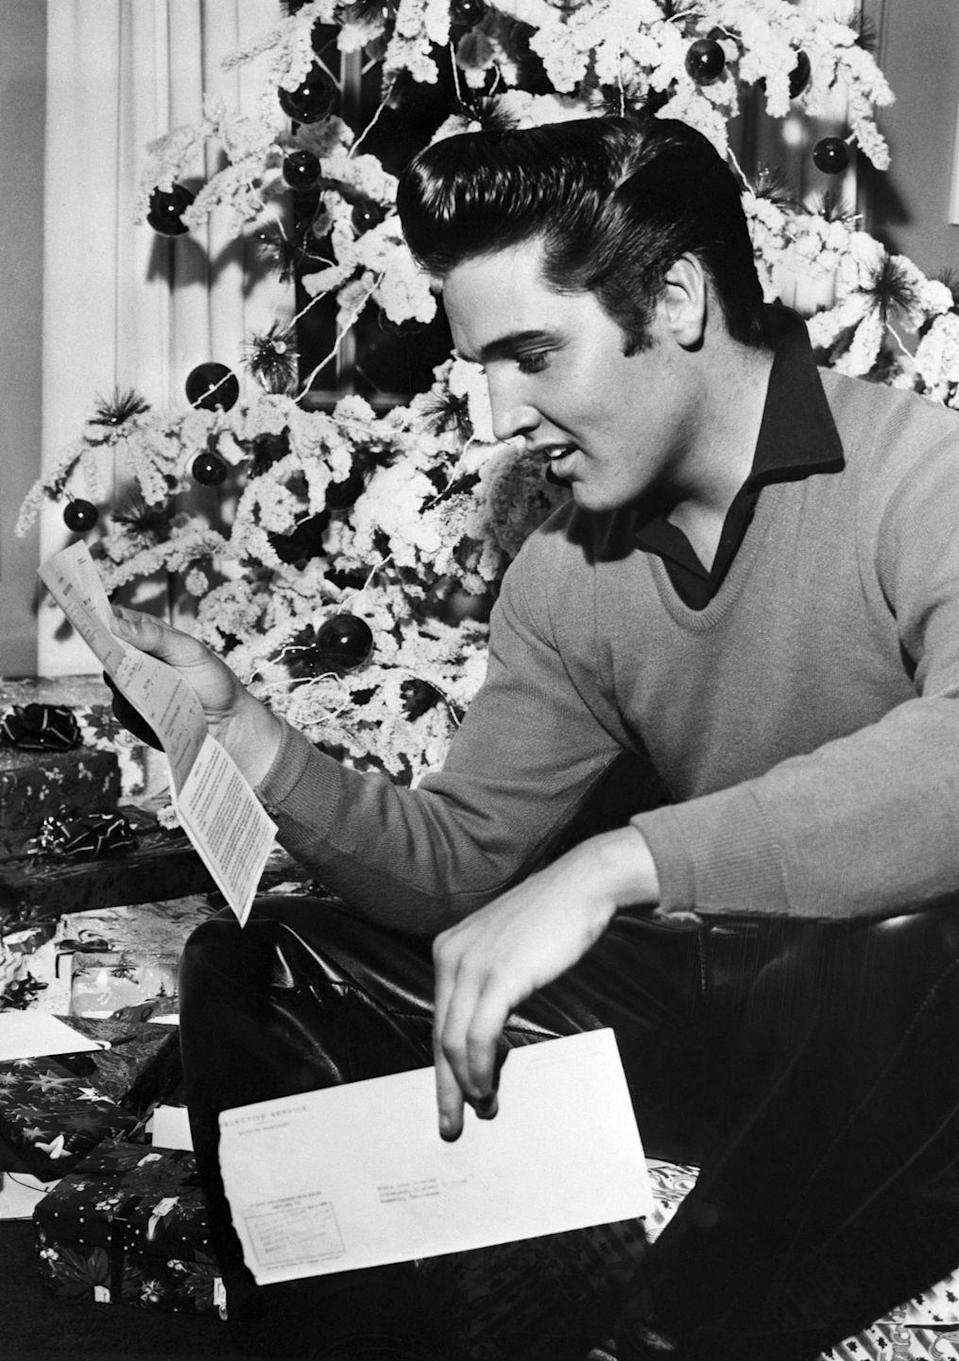 "<p>While Elvis was <a href=""https://www.history.com/this-day-in-history/elvis-presley-is-drafted"" rel=""nofollow noopener"" target=""_blank"" data-ylk=""slk:celebrating Christmas at Graceland"" class=""link rapid-noclick-resp"">celebrating Christmas at Graceland</a>, the singer received his draft notice for the Korean War. Elvis earned one service deferment so he could finish filming the movie <em>King Creole</em>. </p>"